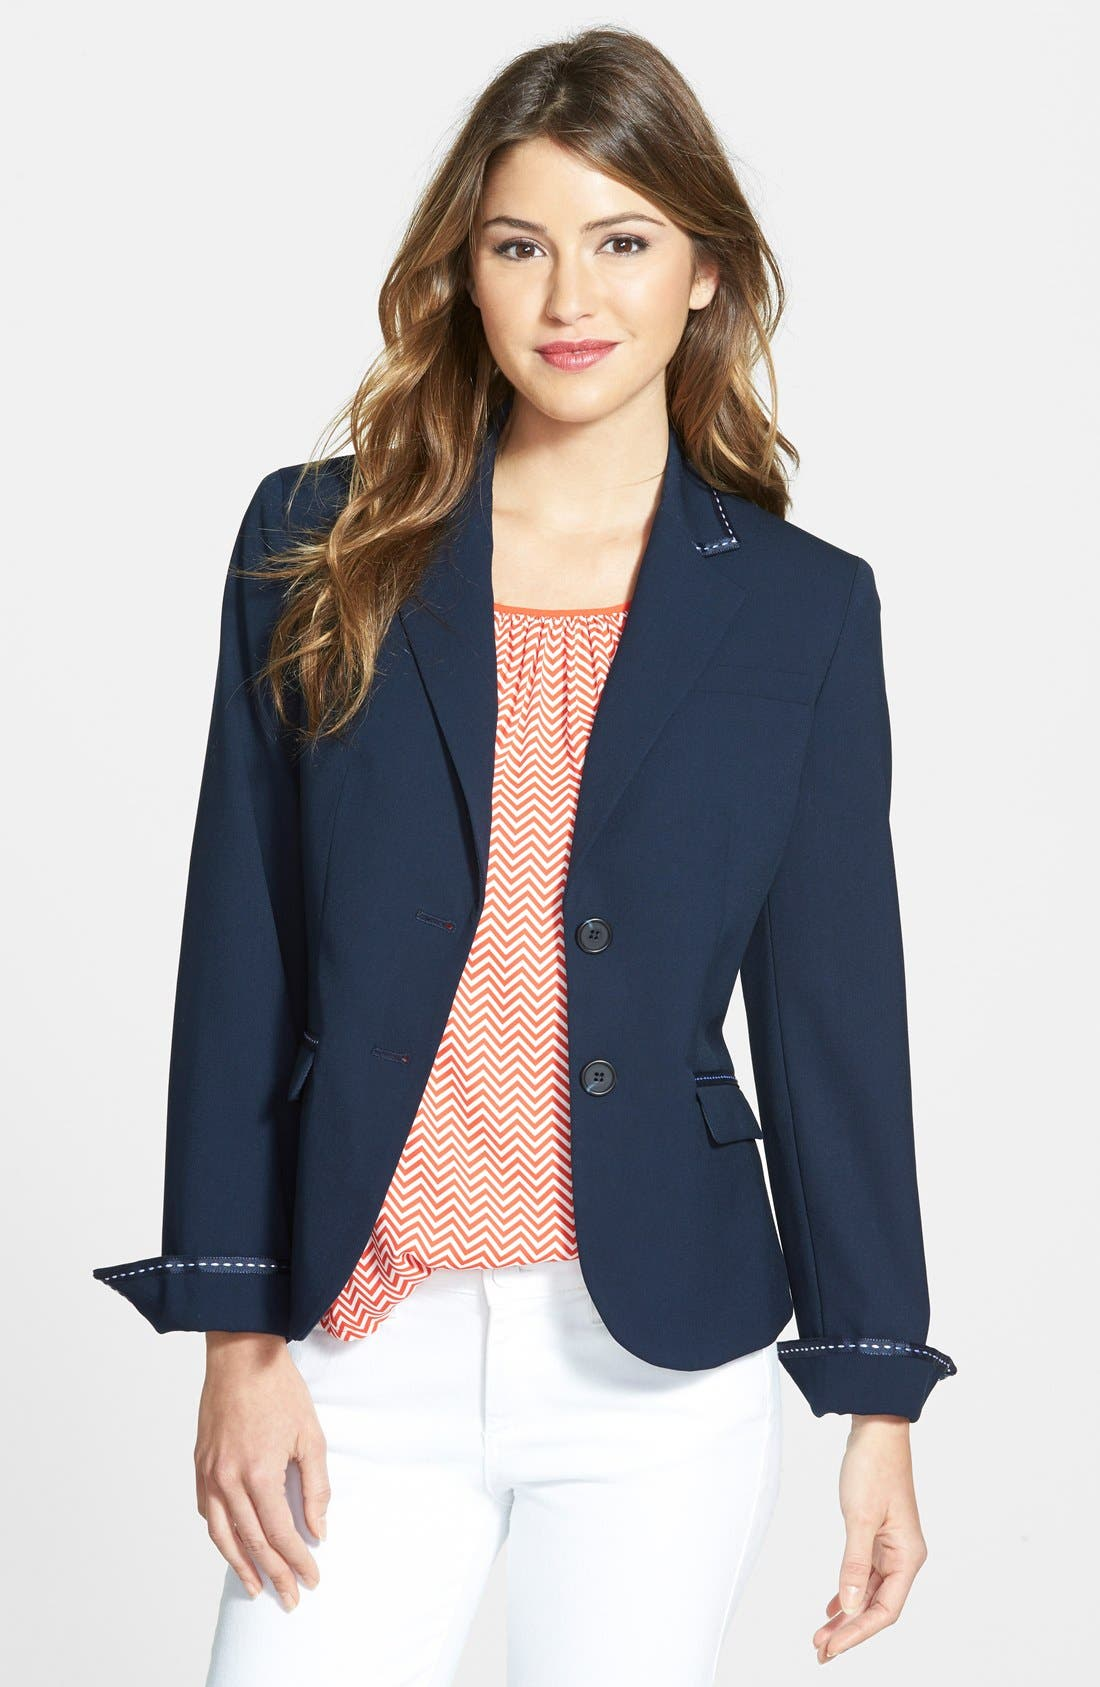 Alternate Image 1 Selected - Jones New York 'Olivia' Grosgrain Trim Jacket